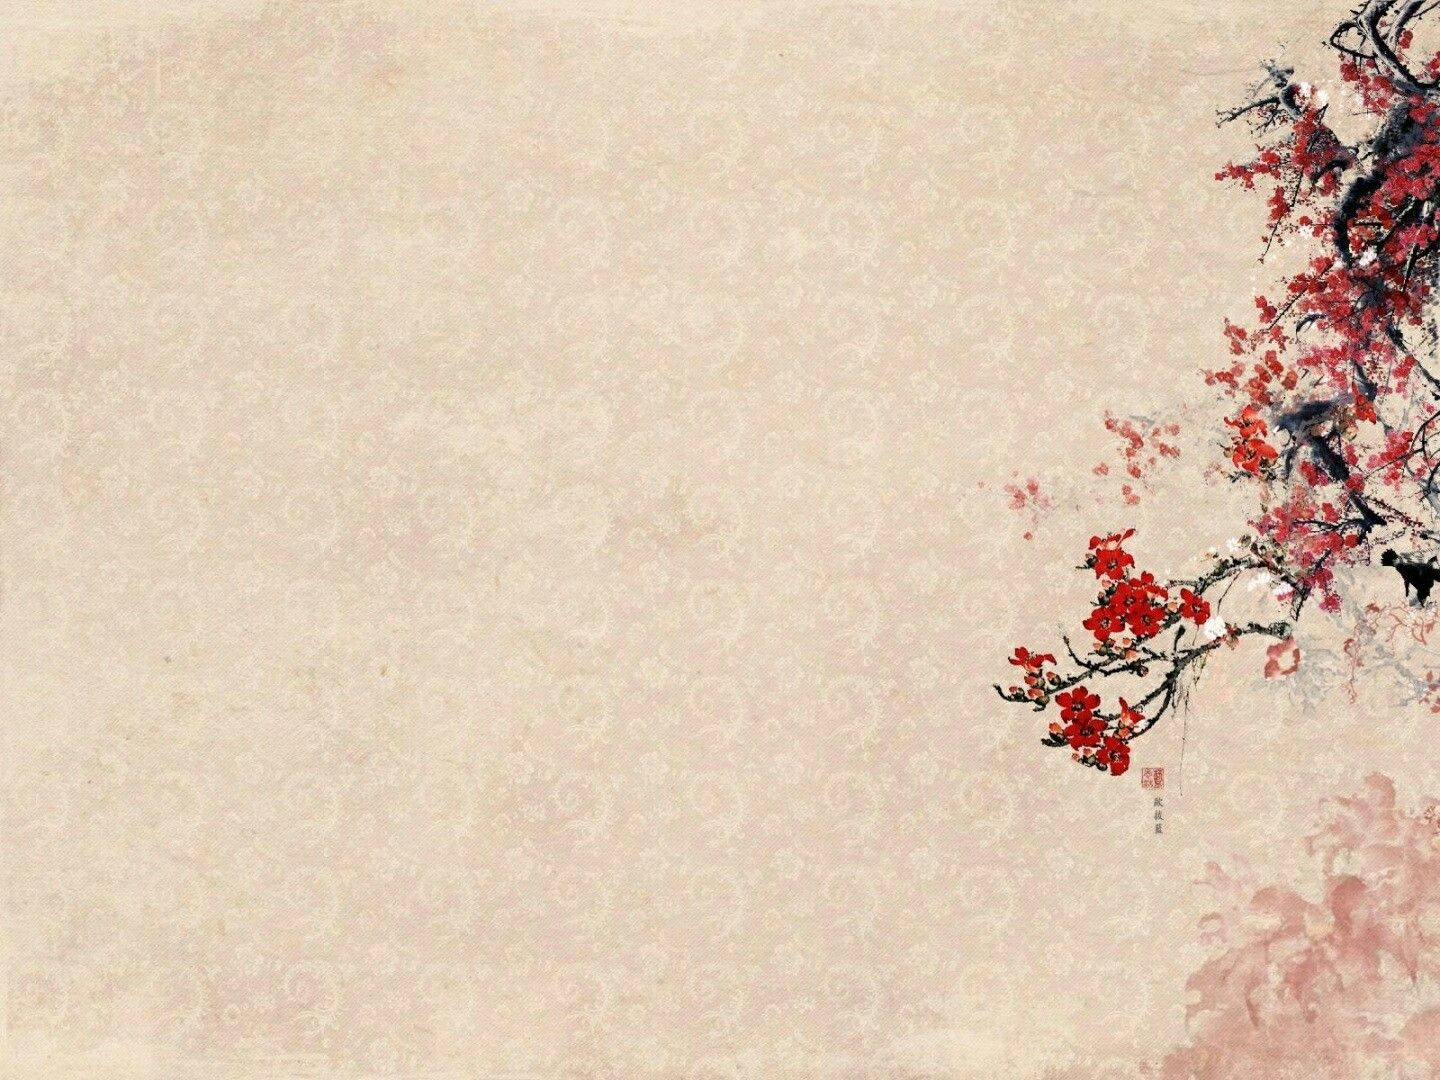 Pin by mei on asi pinterest explore floral artwork japanese style and more toneelgroepblik Images